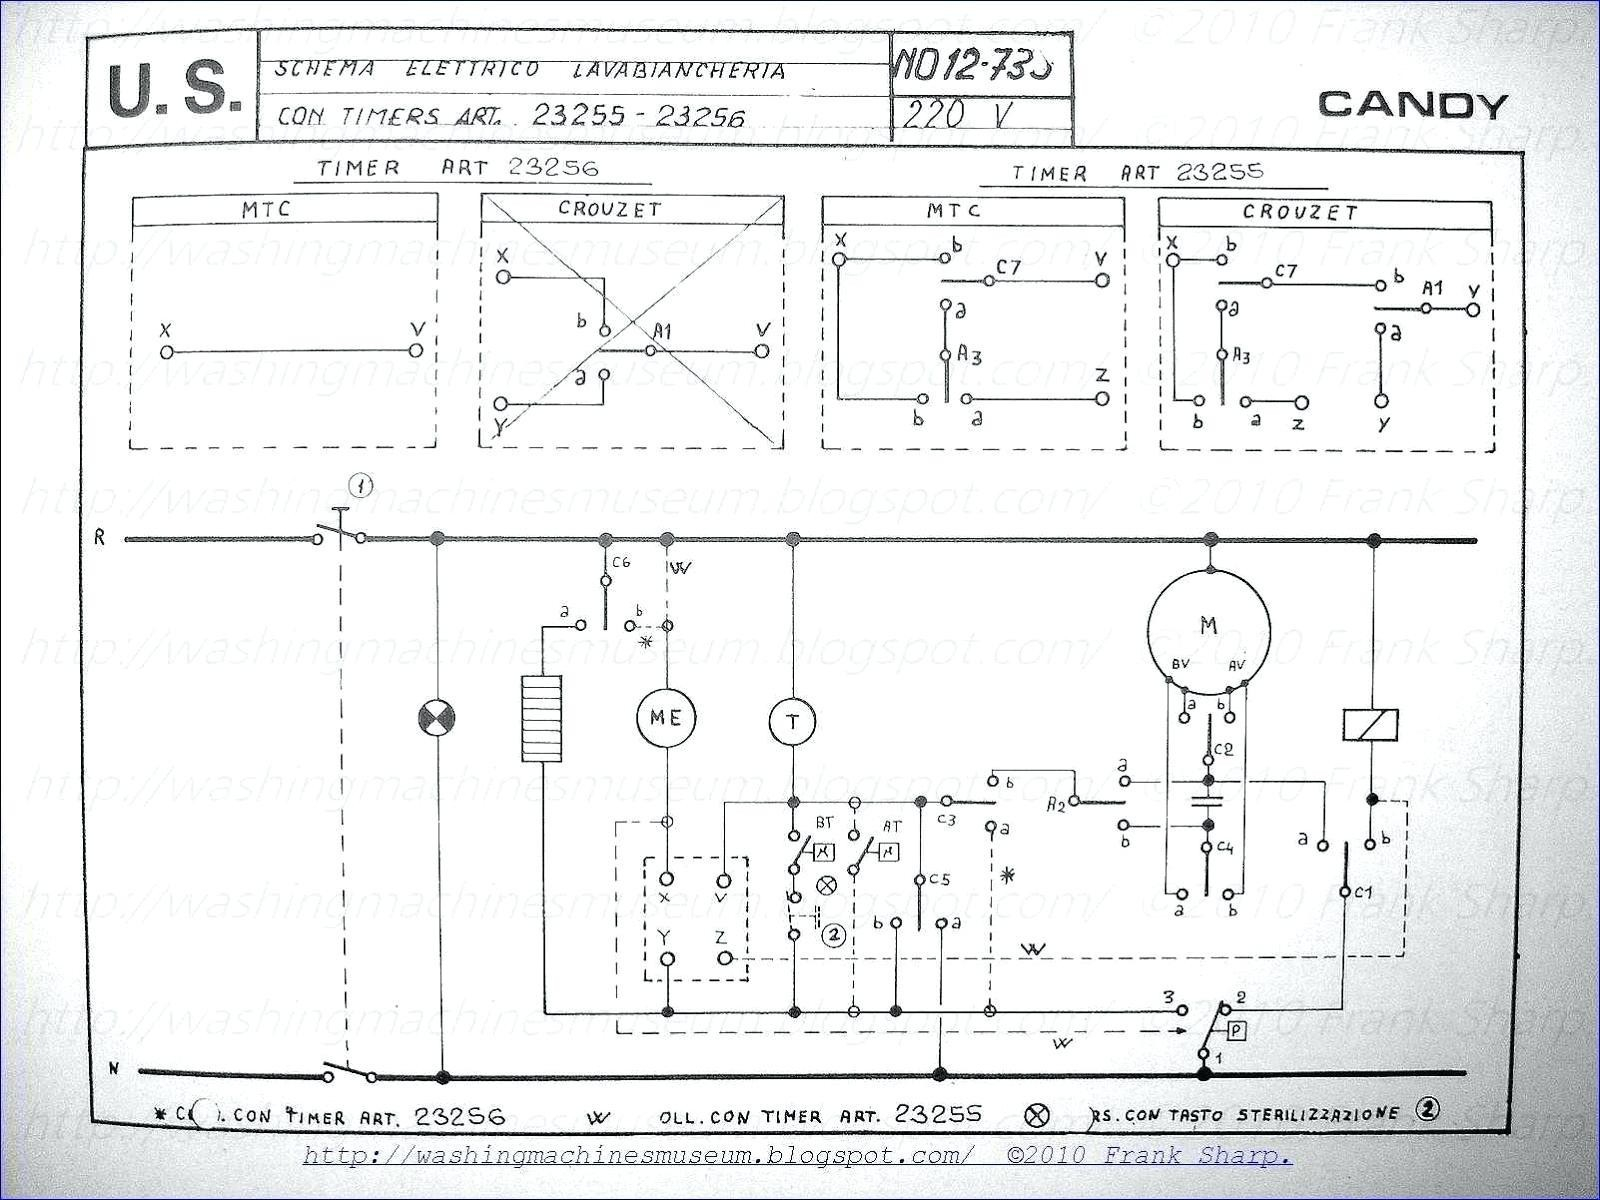 hotpoint dryer timer wiring diagram Collection-Wiring Diagram for Ge Dryer Refrence Hotpoint Electric Dryer Wiring Diagram Hotpoint Free Engine Image 12-a